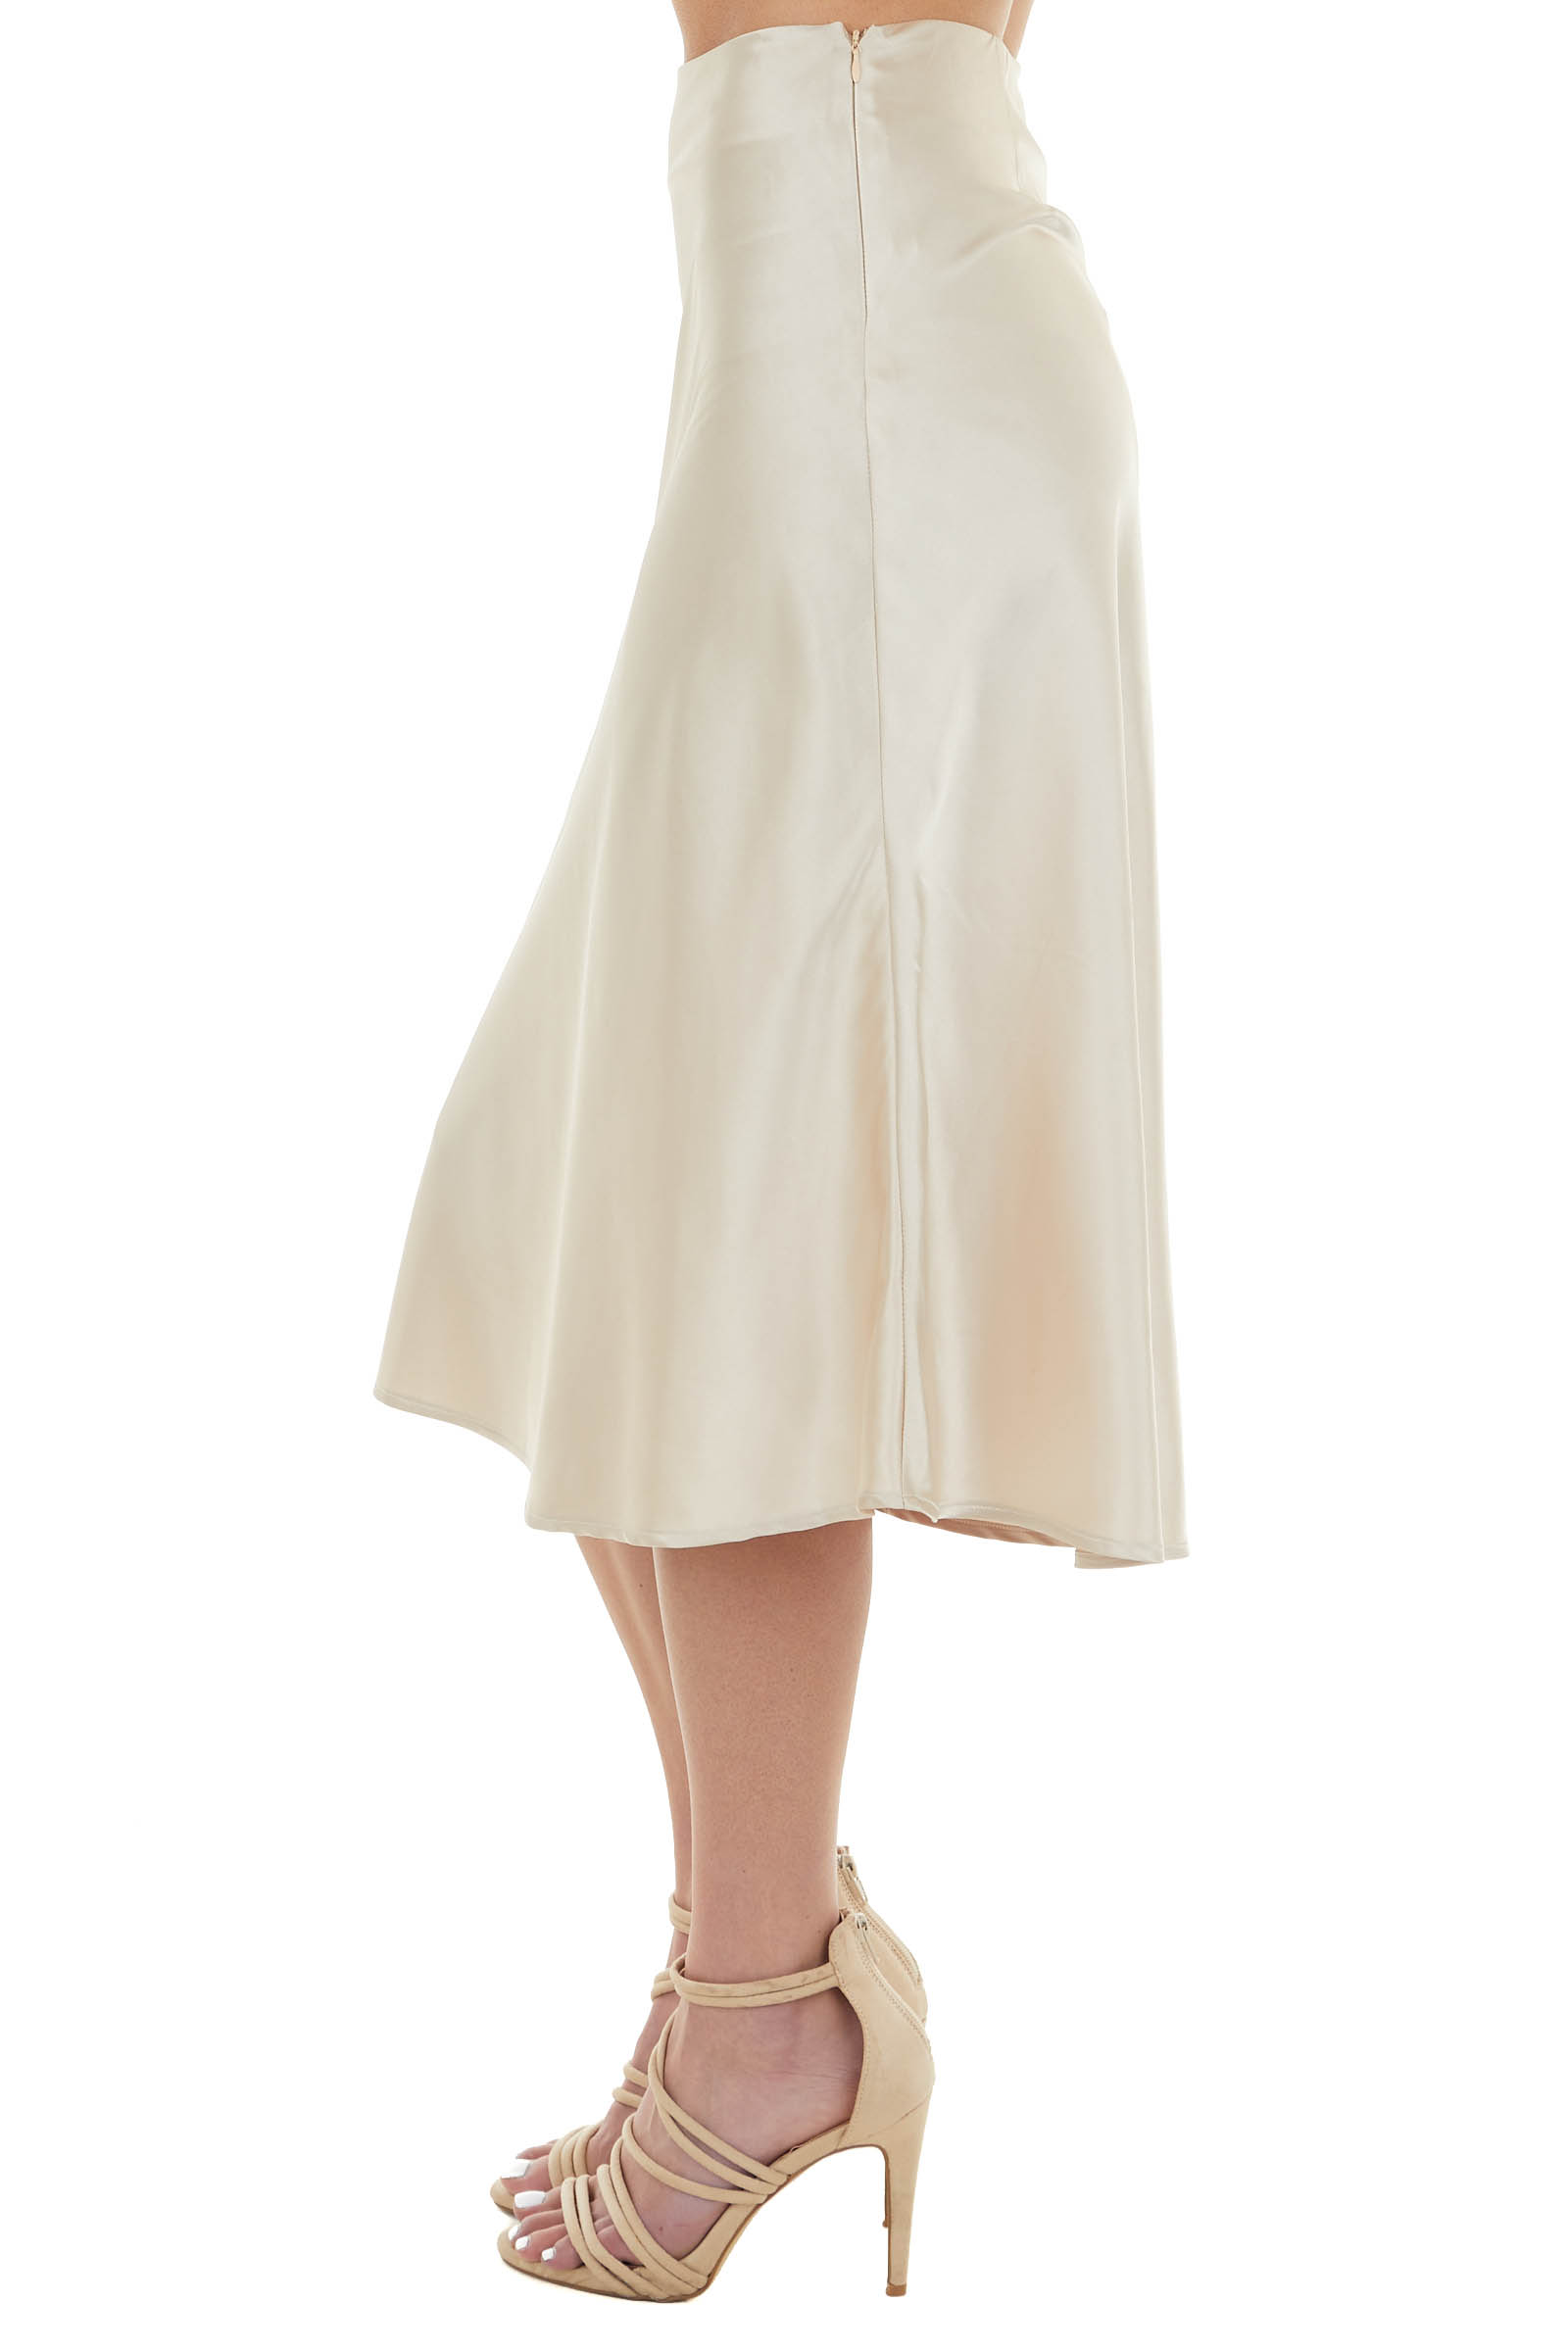 Champagne Woven Chiffon Fitted Midi Skirt with Zip Closure